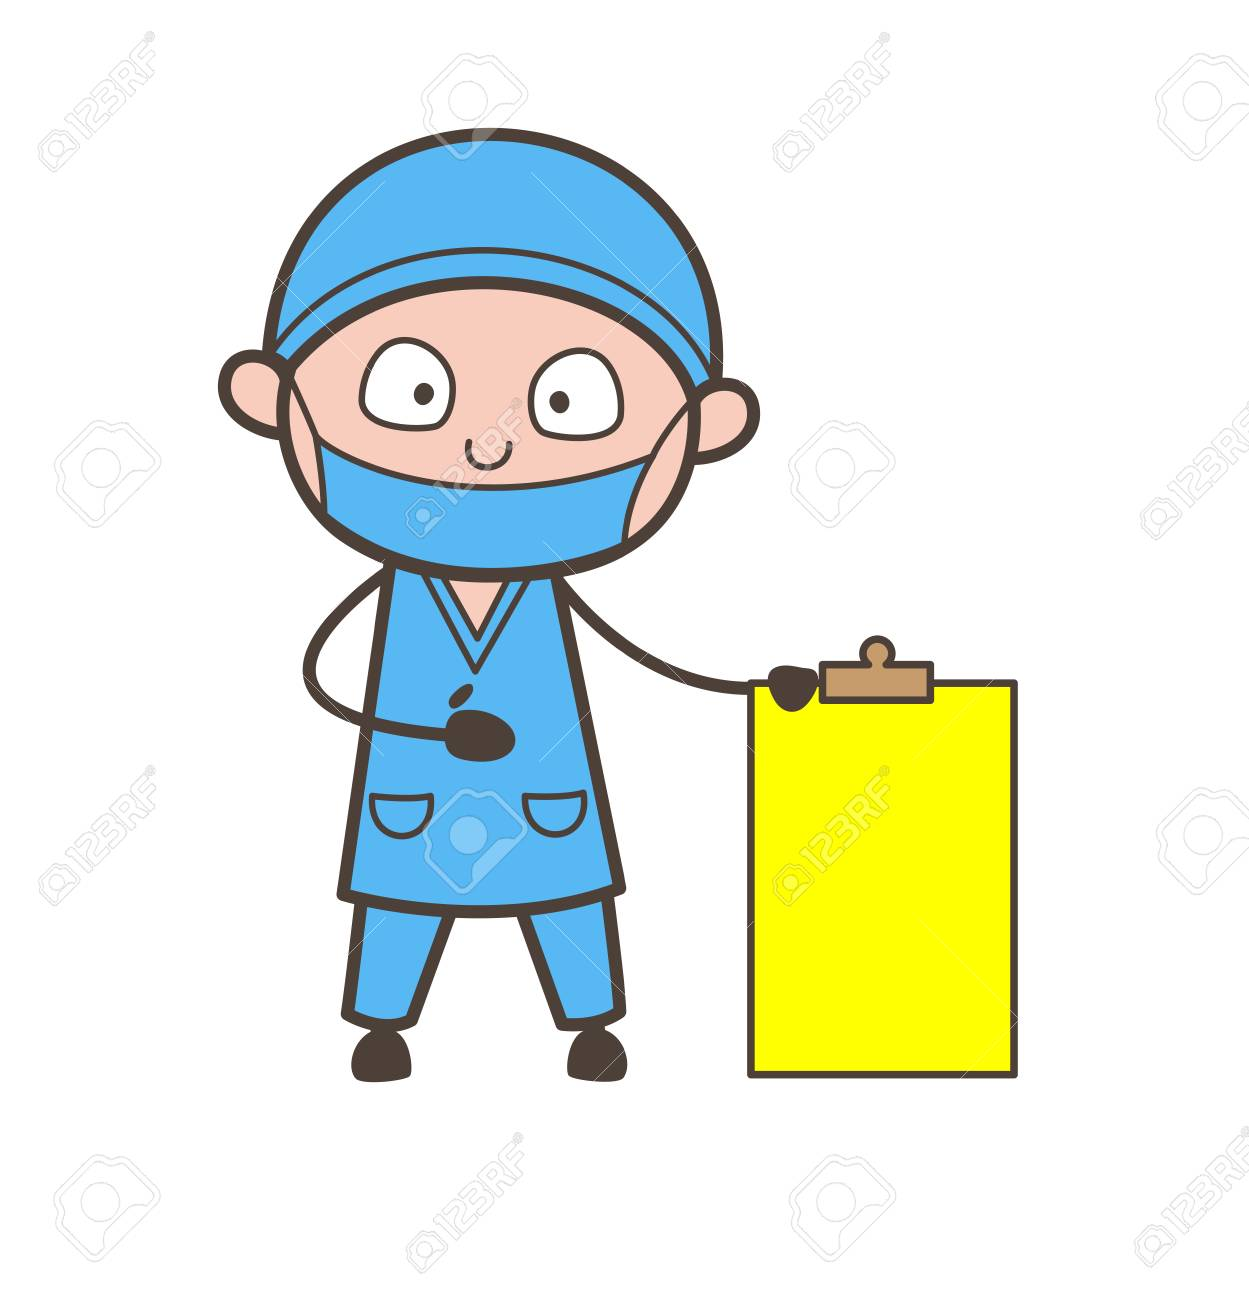 Cartoon Therapist Showing A Blank Cardboard Vector Royalty Free Cliparts Vectors And Stock Illustration Image 84478716